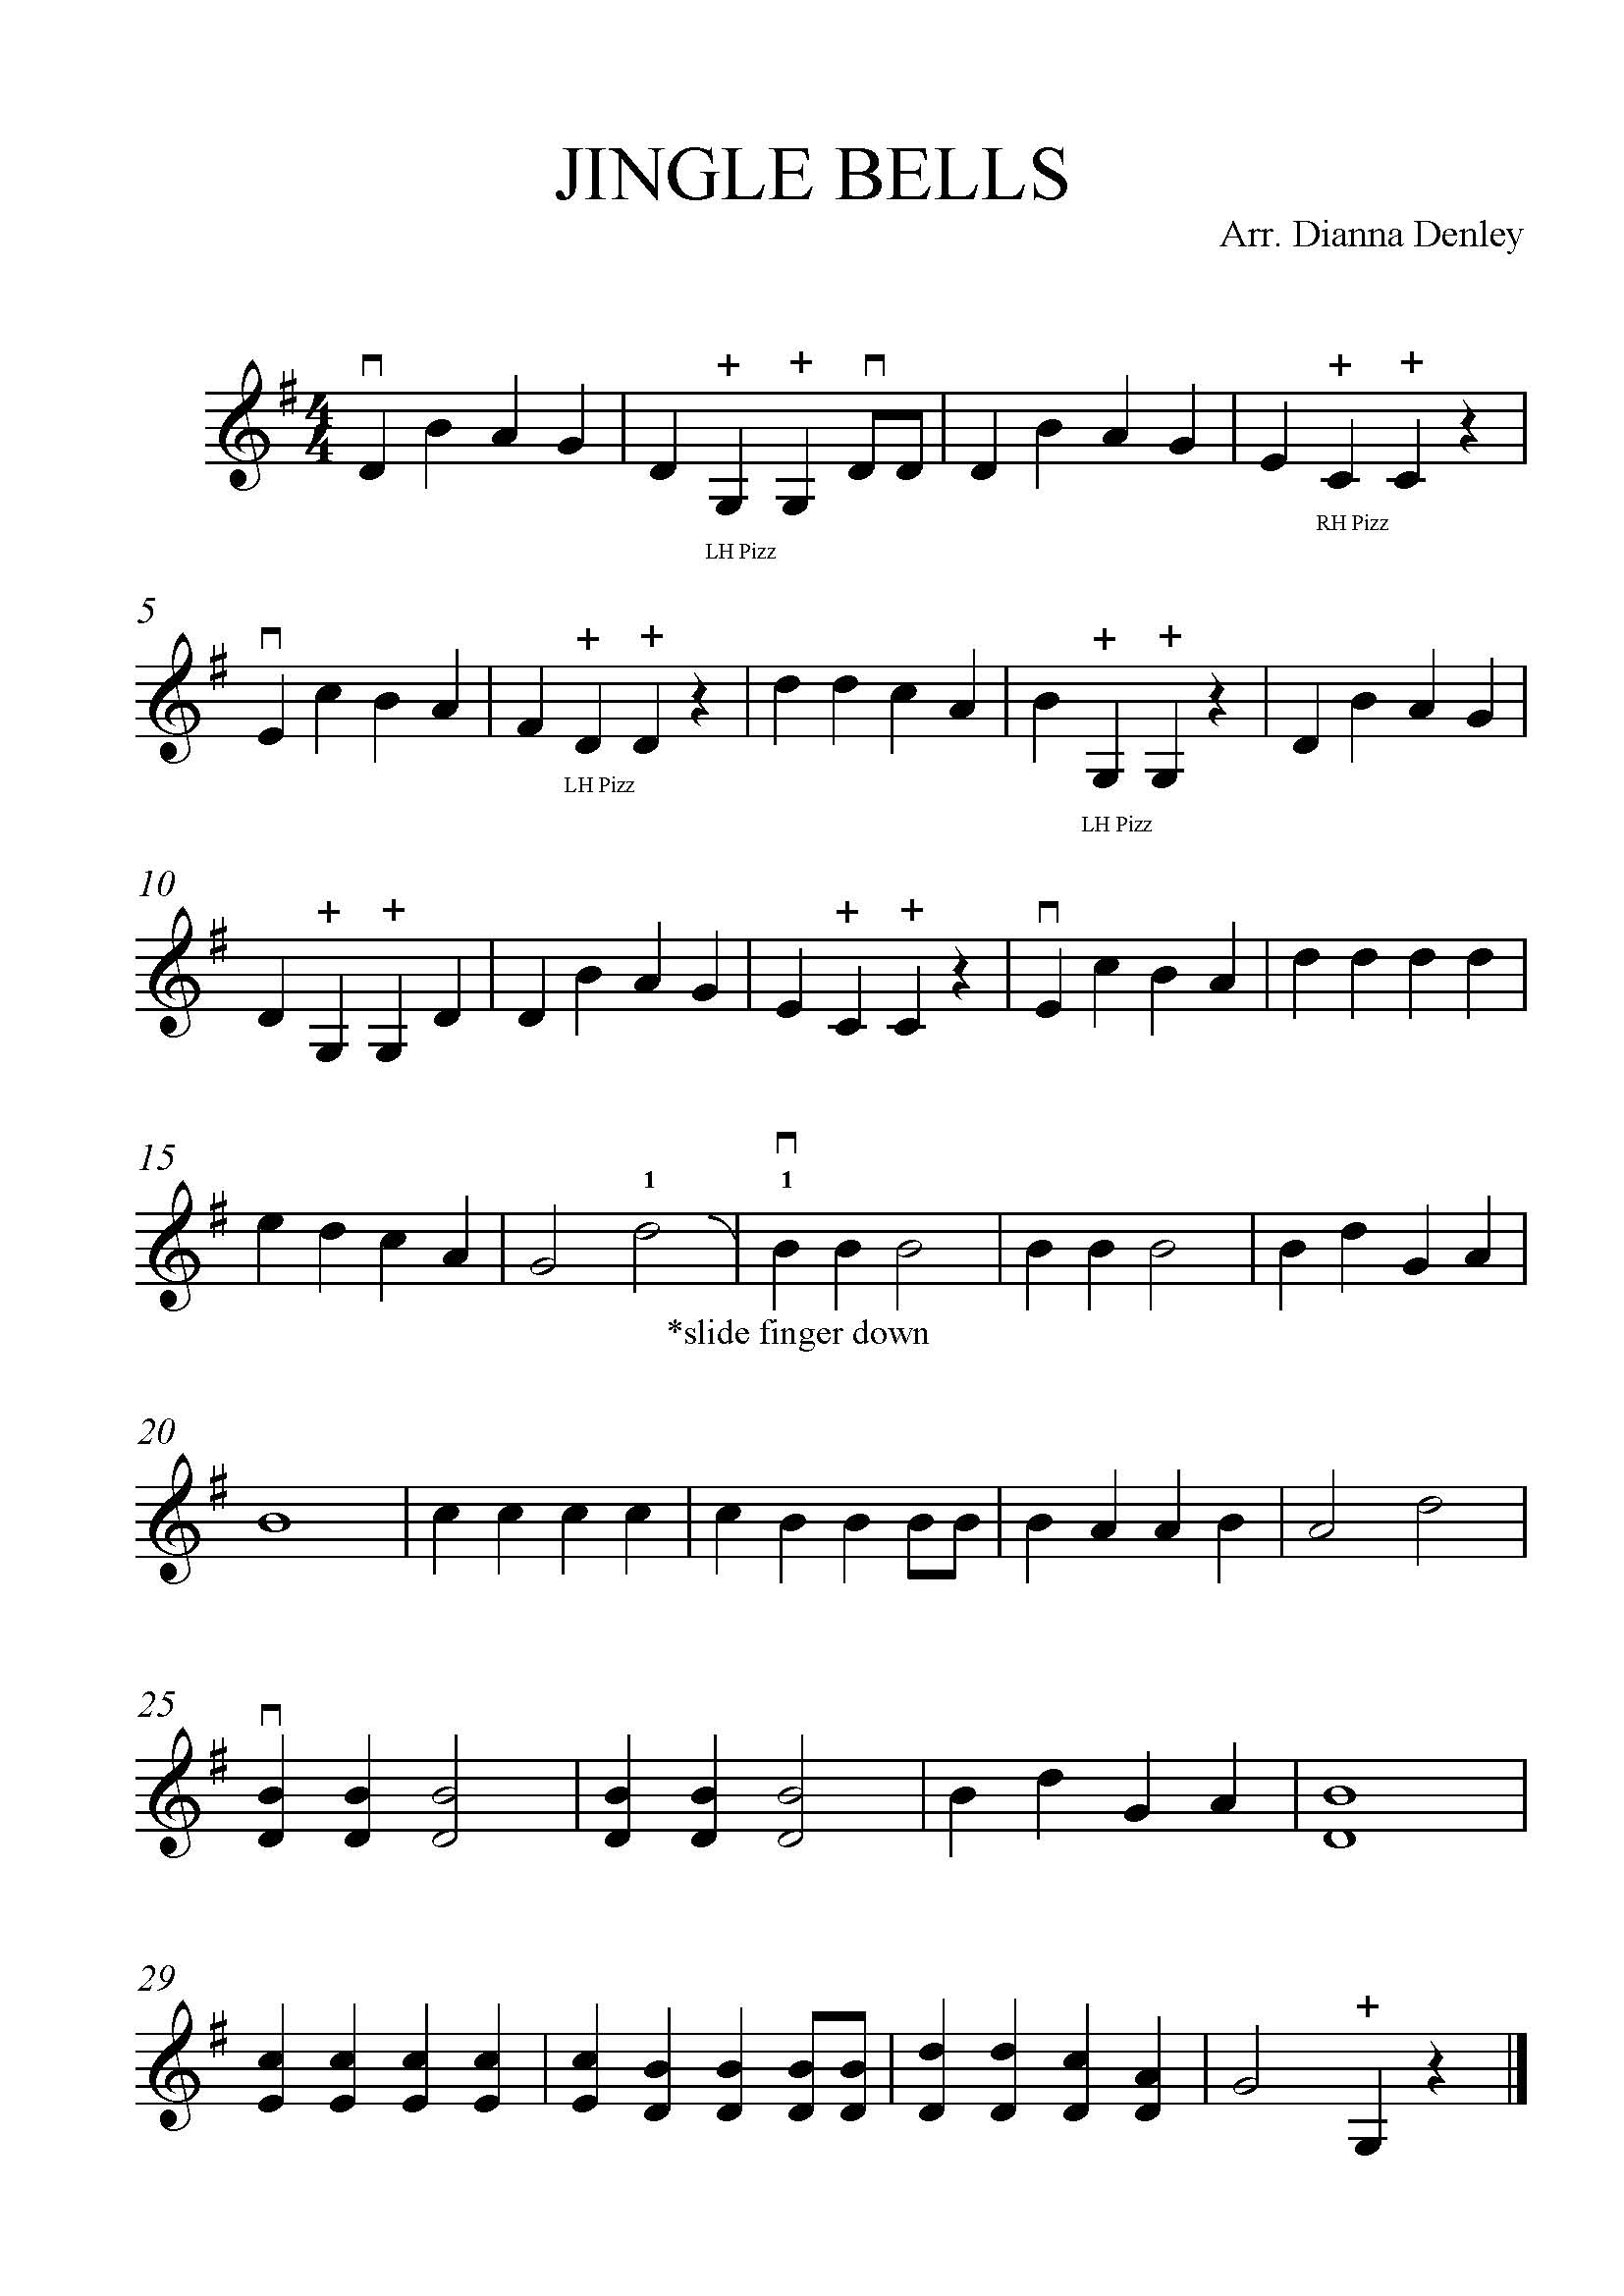 Jingle Bells Solo Violin | Denley Music